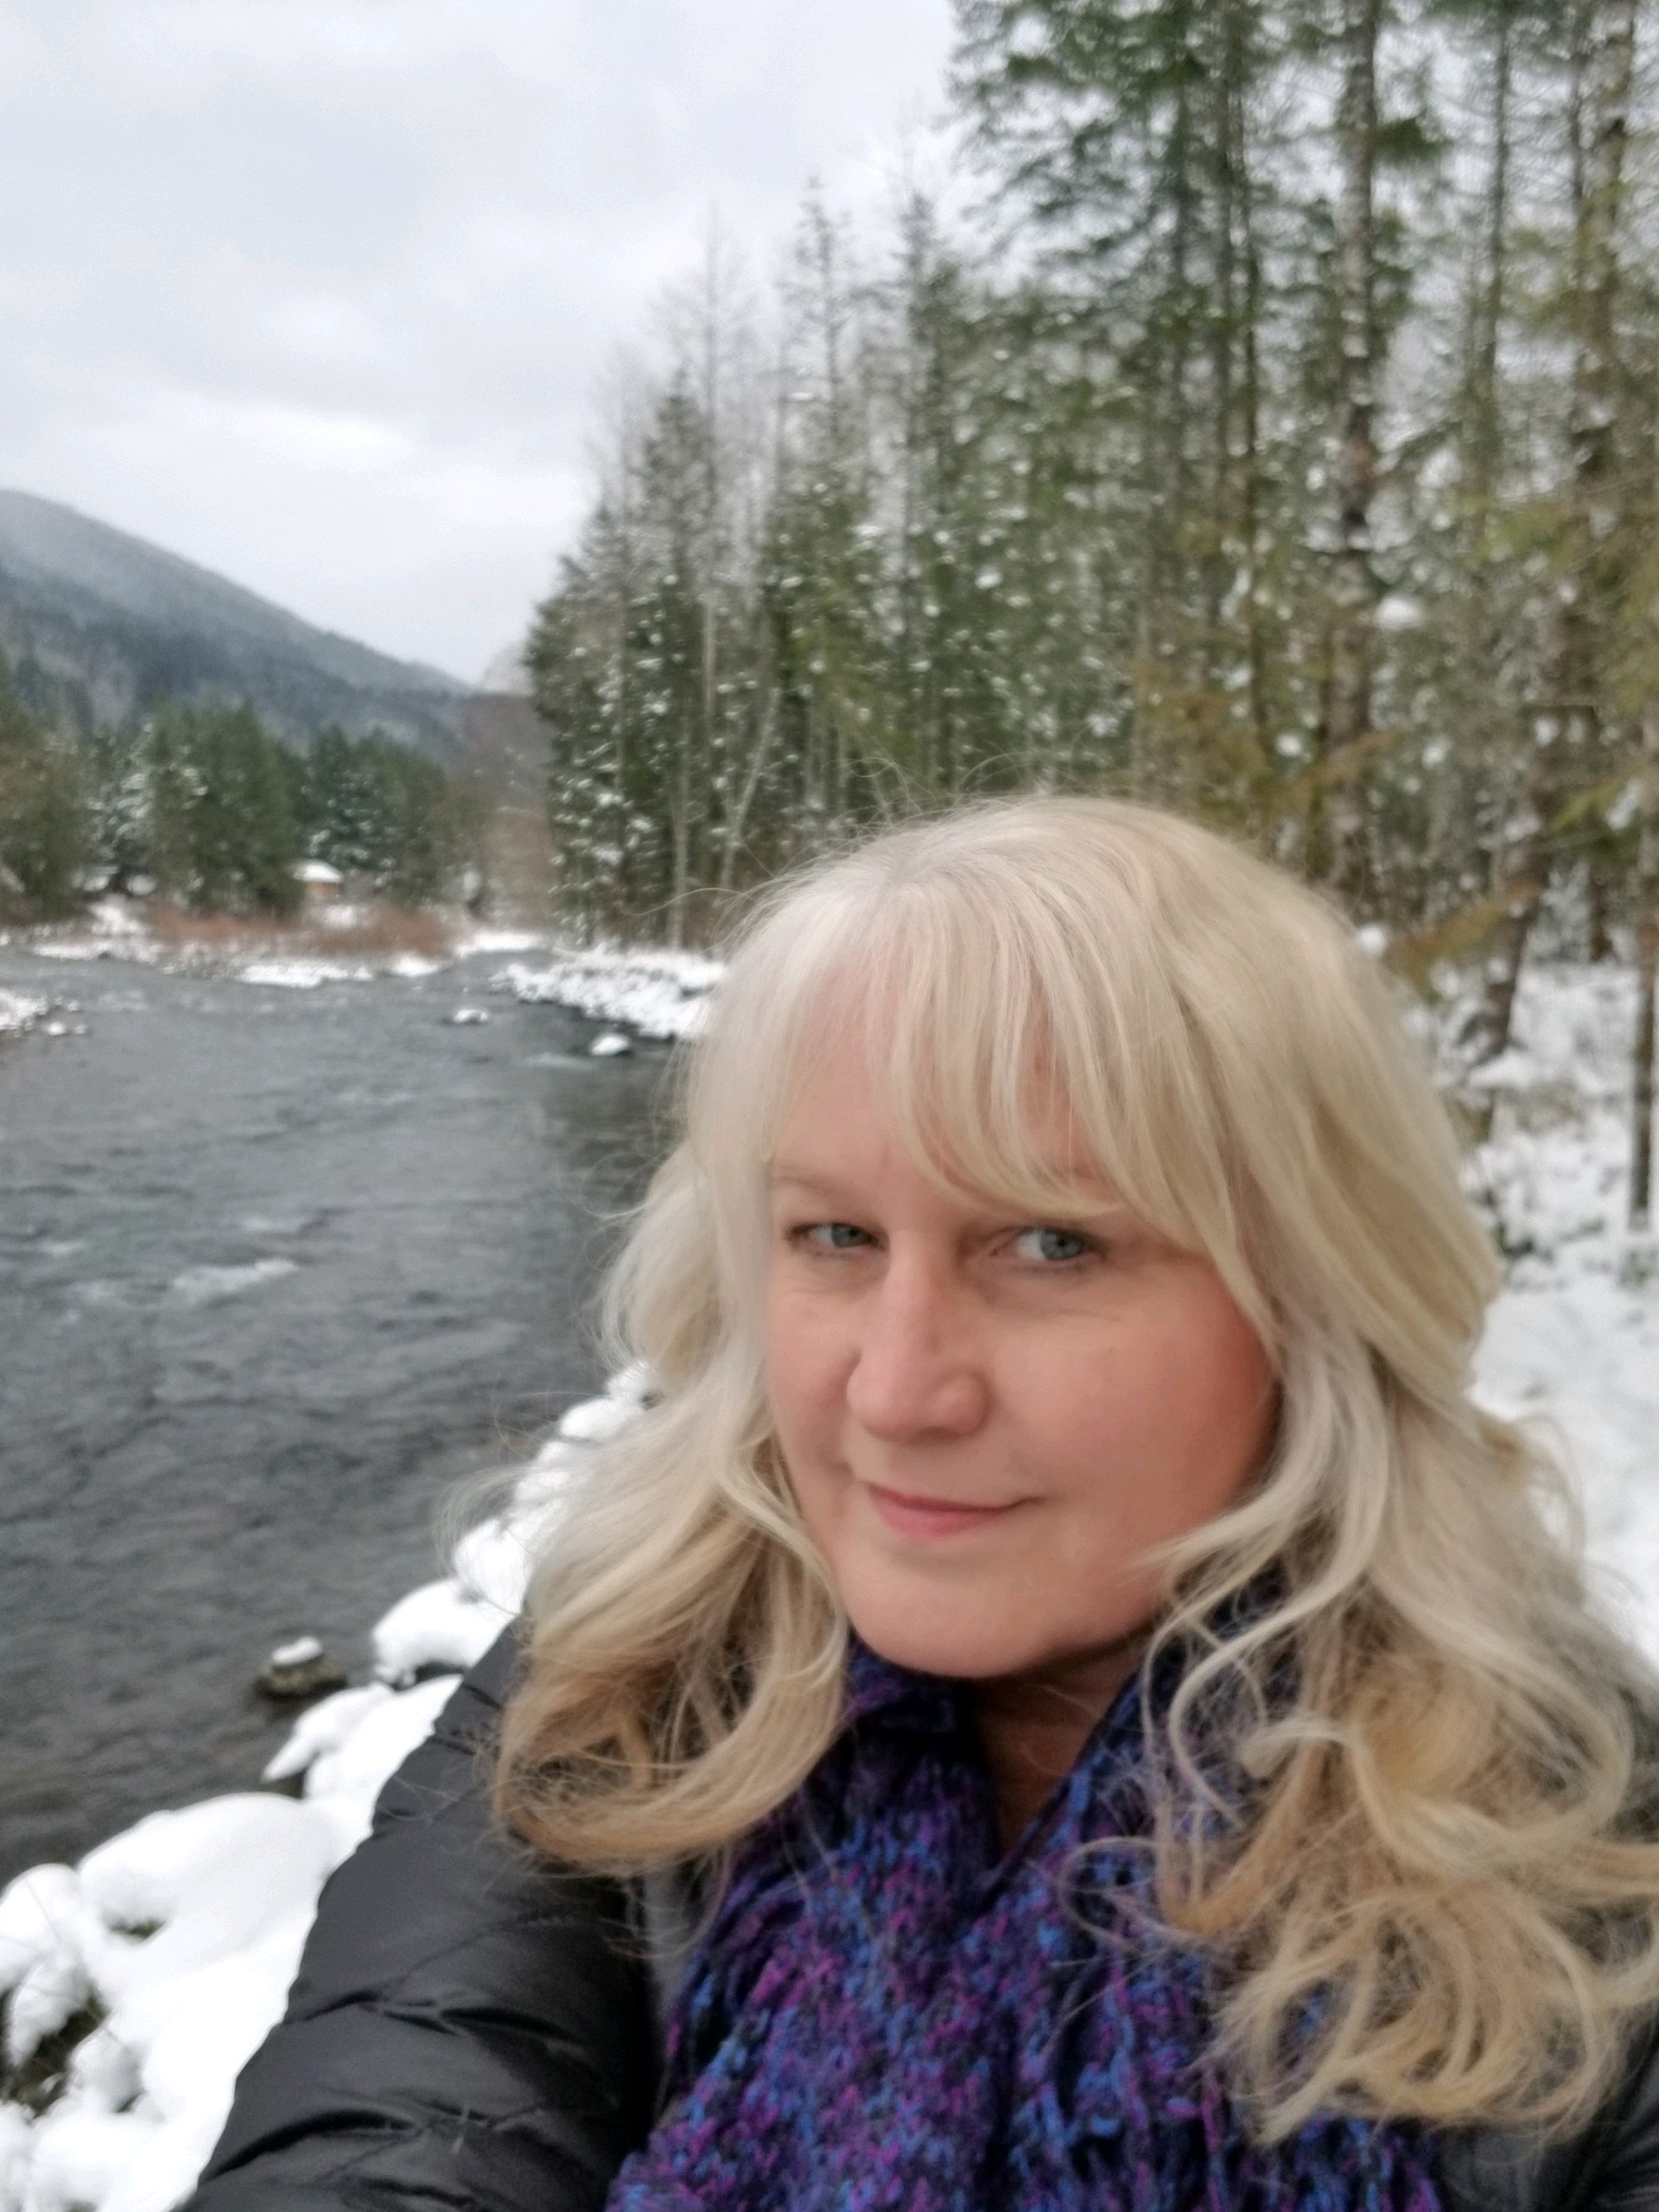 Tammy Rands - is the proud mother of Lucas. She has been a professional hair stylist for 40 years and the owner of Parkside Salon for the last 17 years. Tammy is most happiest in nature and near water. She enjoys hiking, beaches, sunshine, flower gardening, and the beauty of snow.